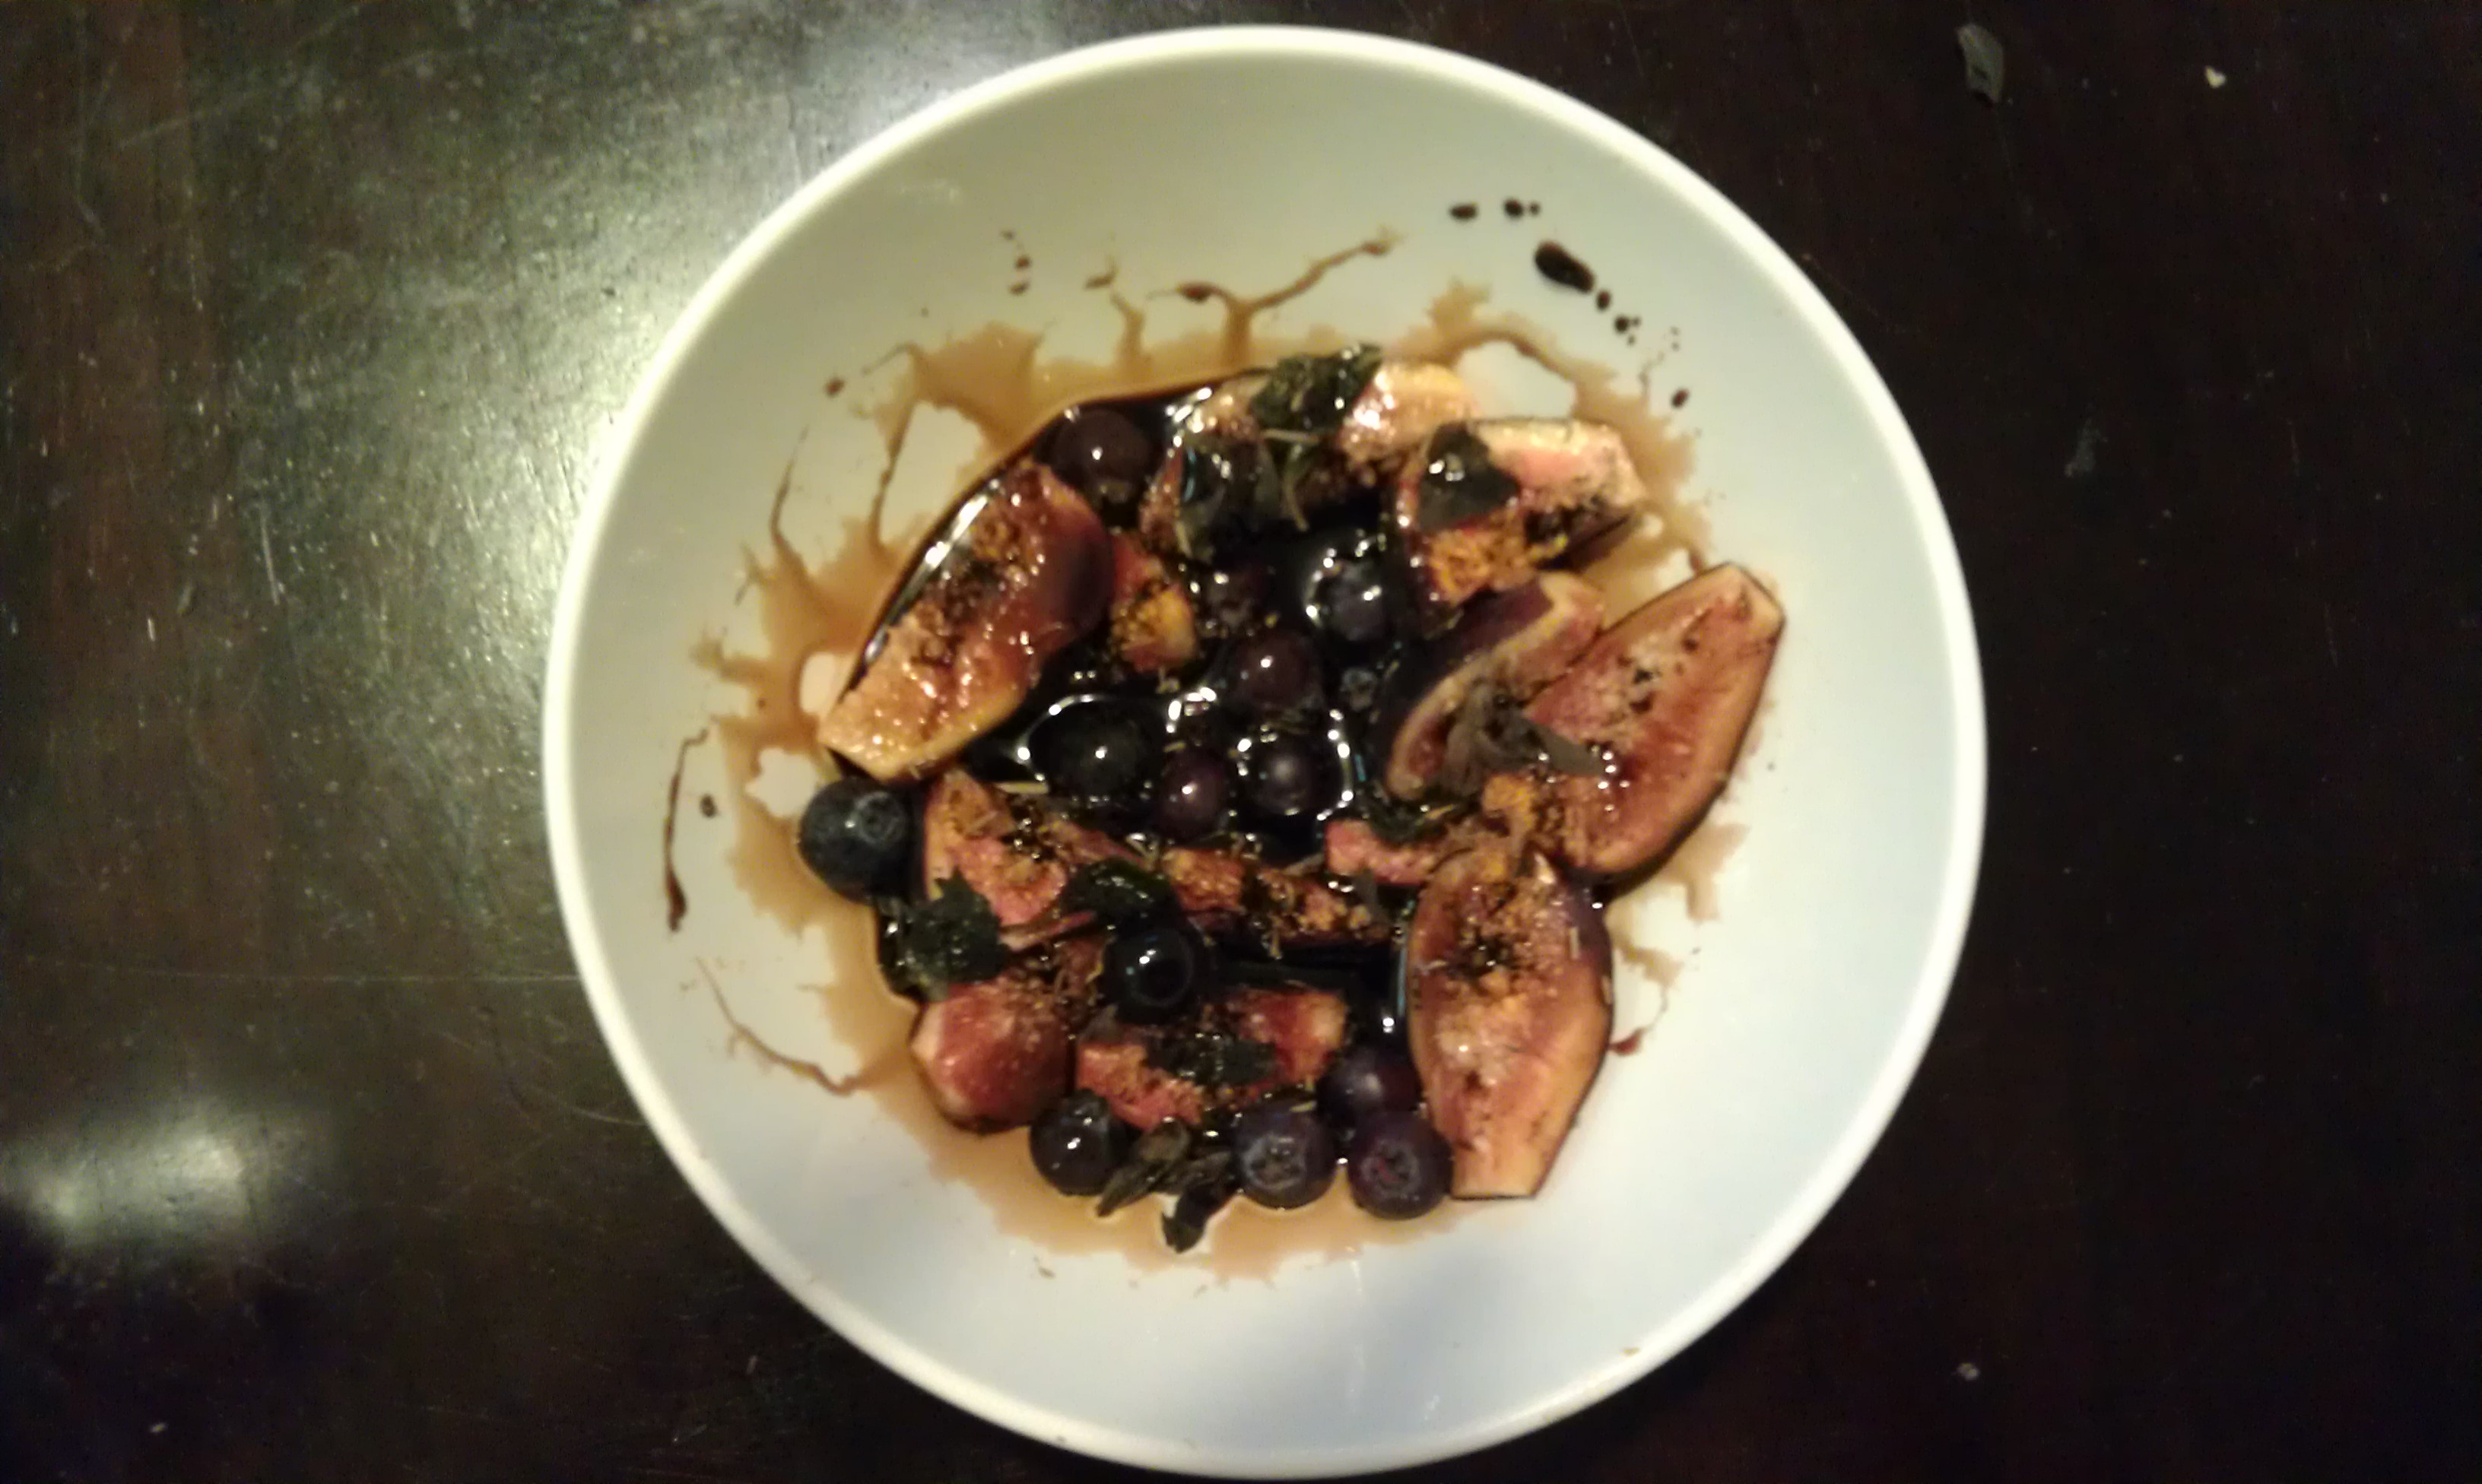 Balsamic Marinated Figs and Blueberries